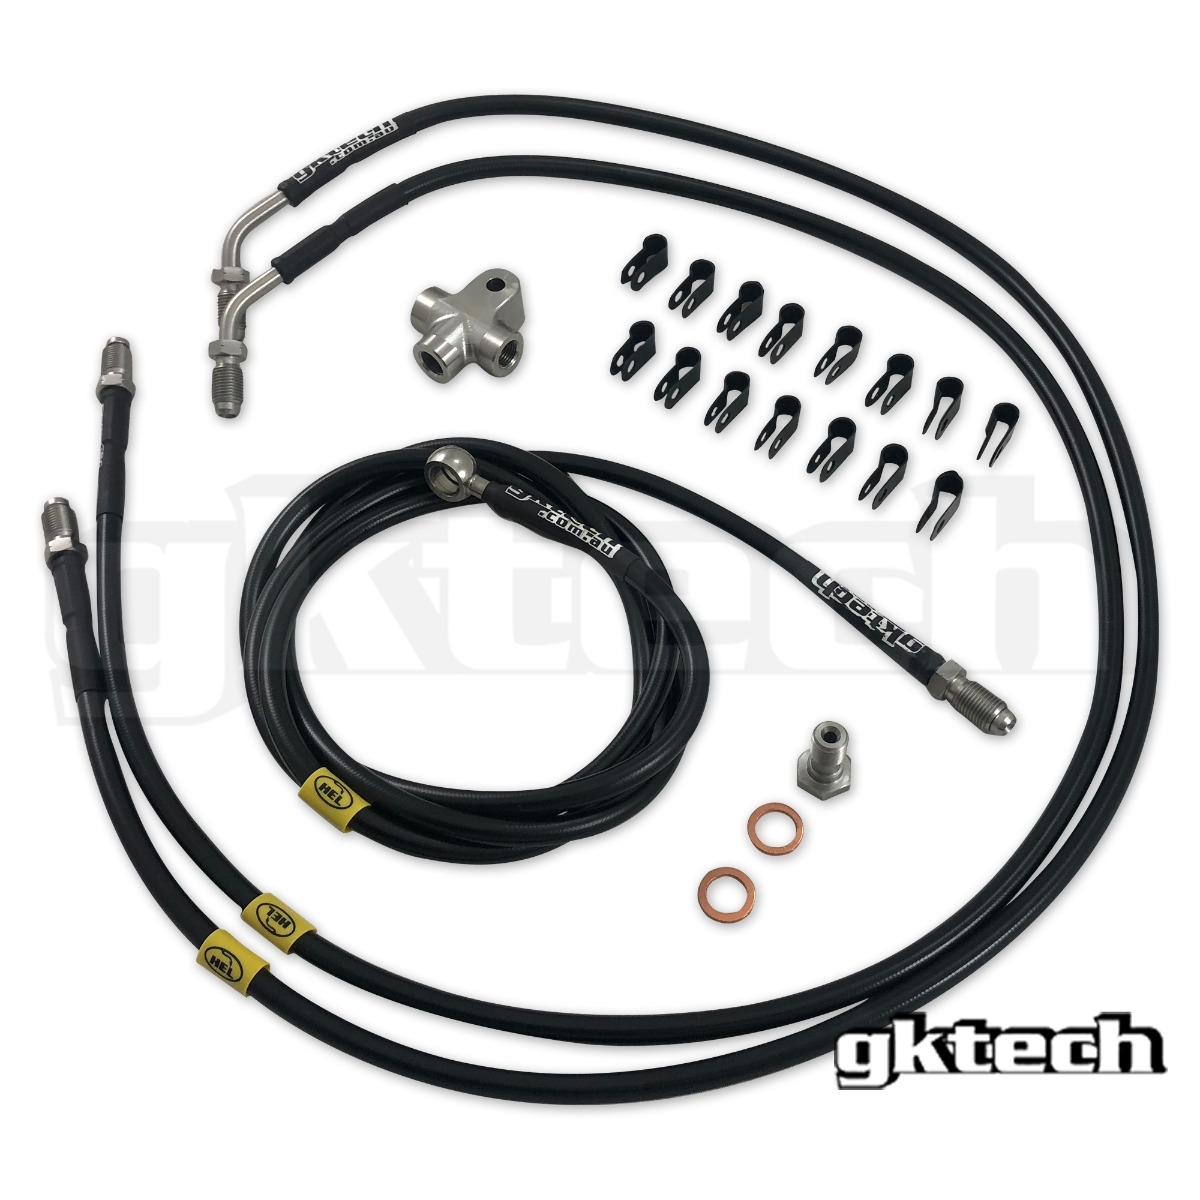 GKTech 2 Pot Nissan Stand Alone Ss Braided Brake Line Kit - Nissan Skyline R32 R33 R34, 300ZX Z32, 240SX S13 S14 S15